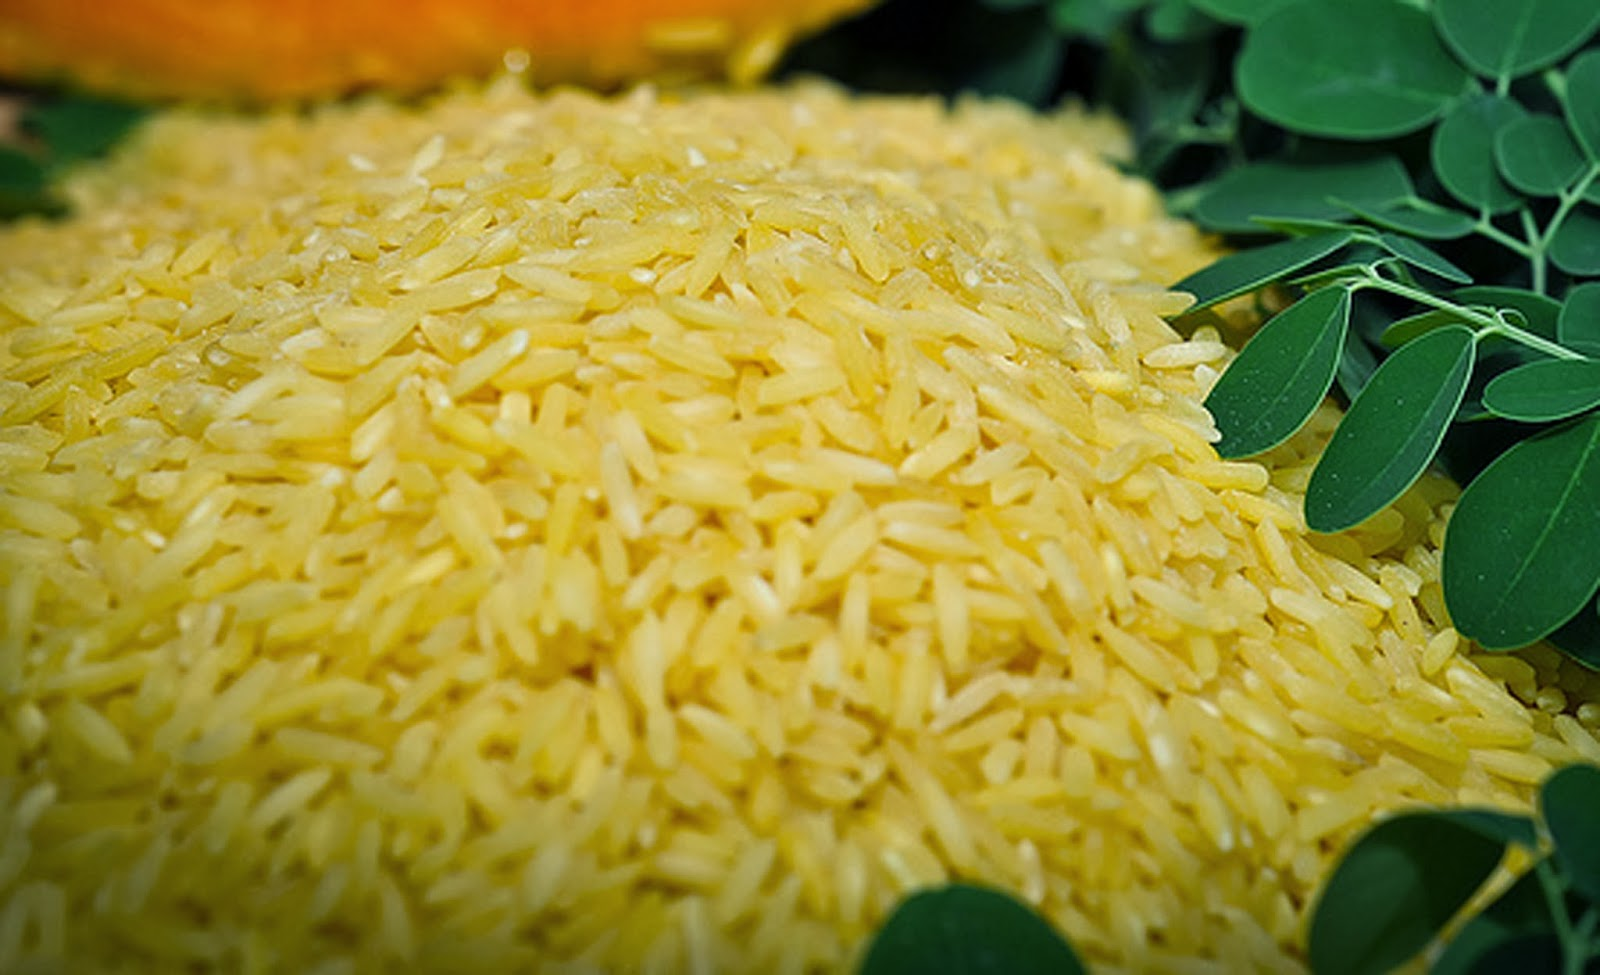 Genetically modified 'Golden Rice' coming in 2016 - HD Photos